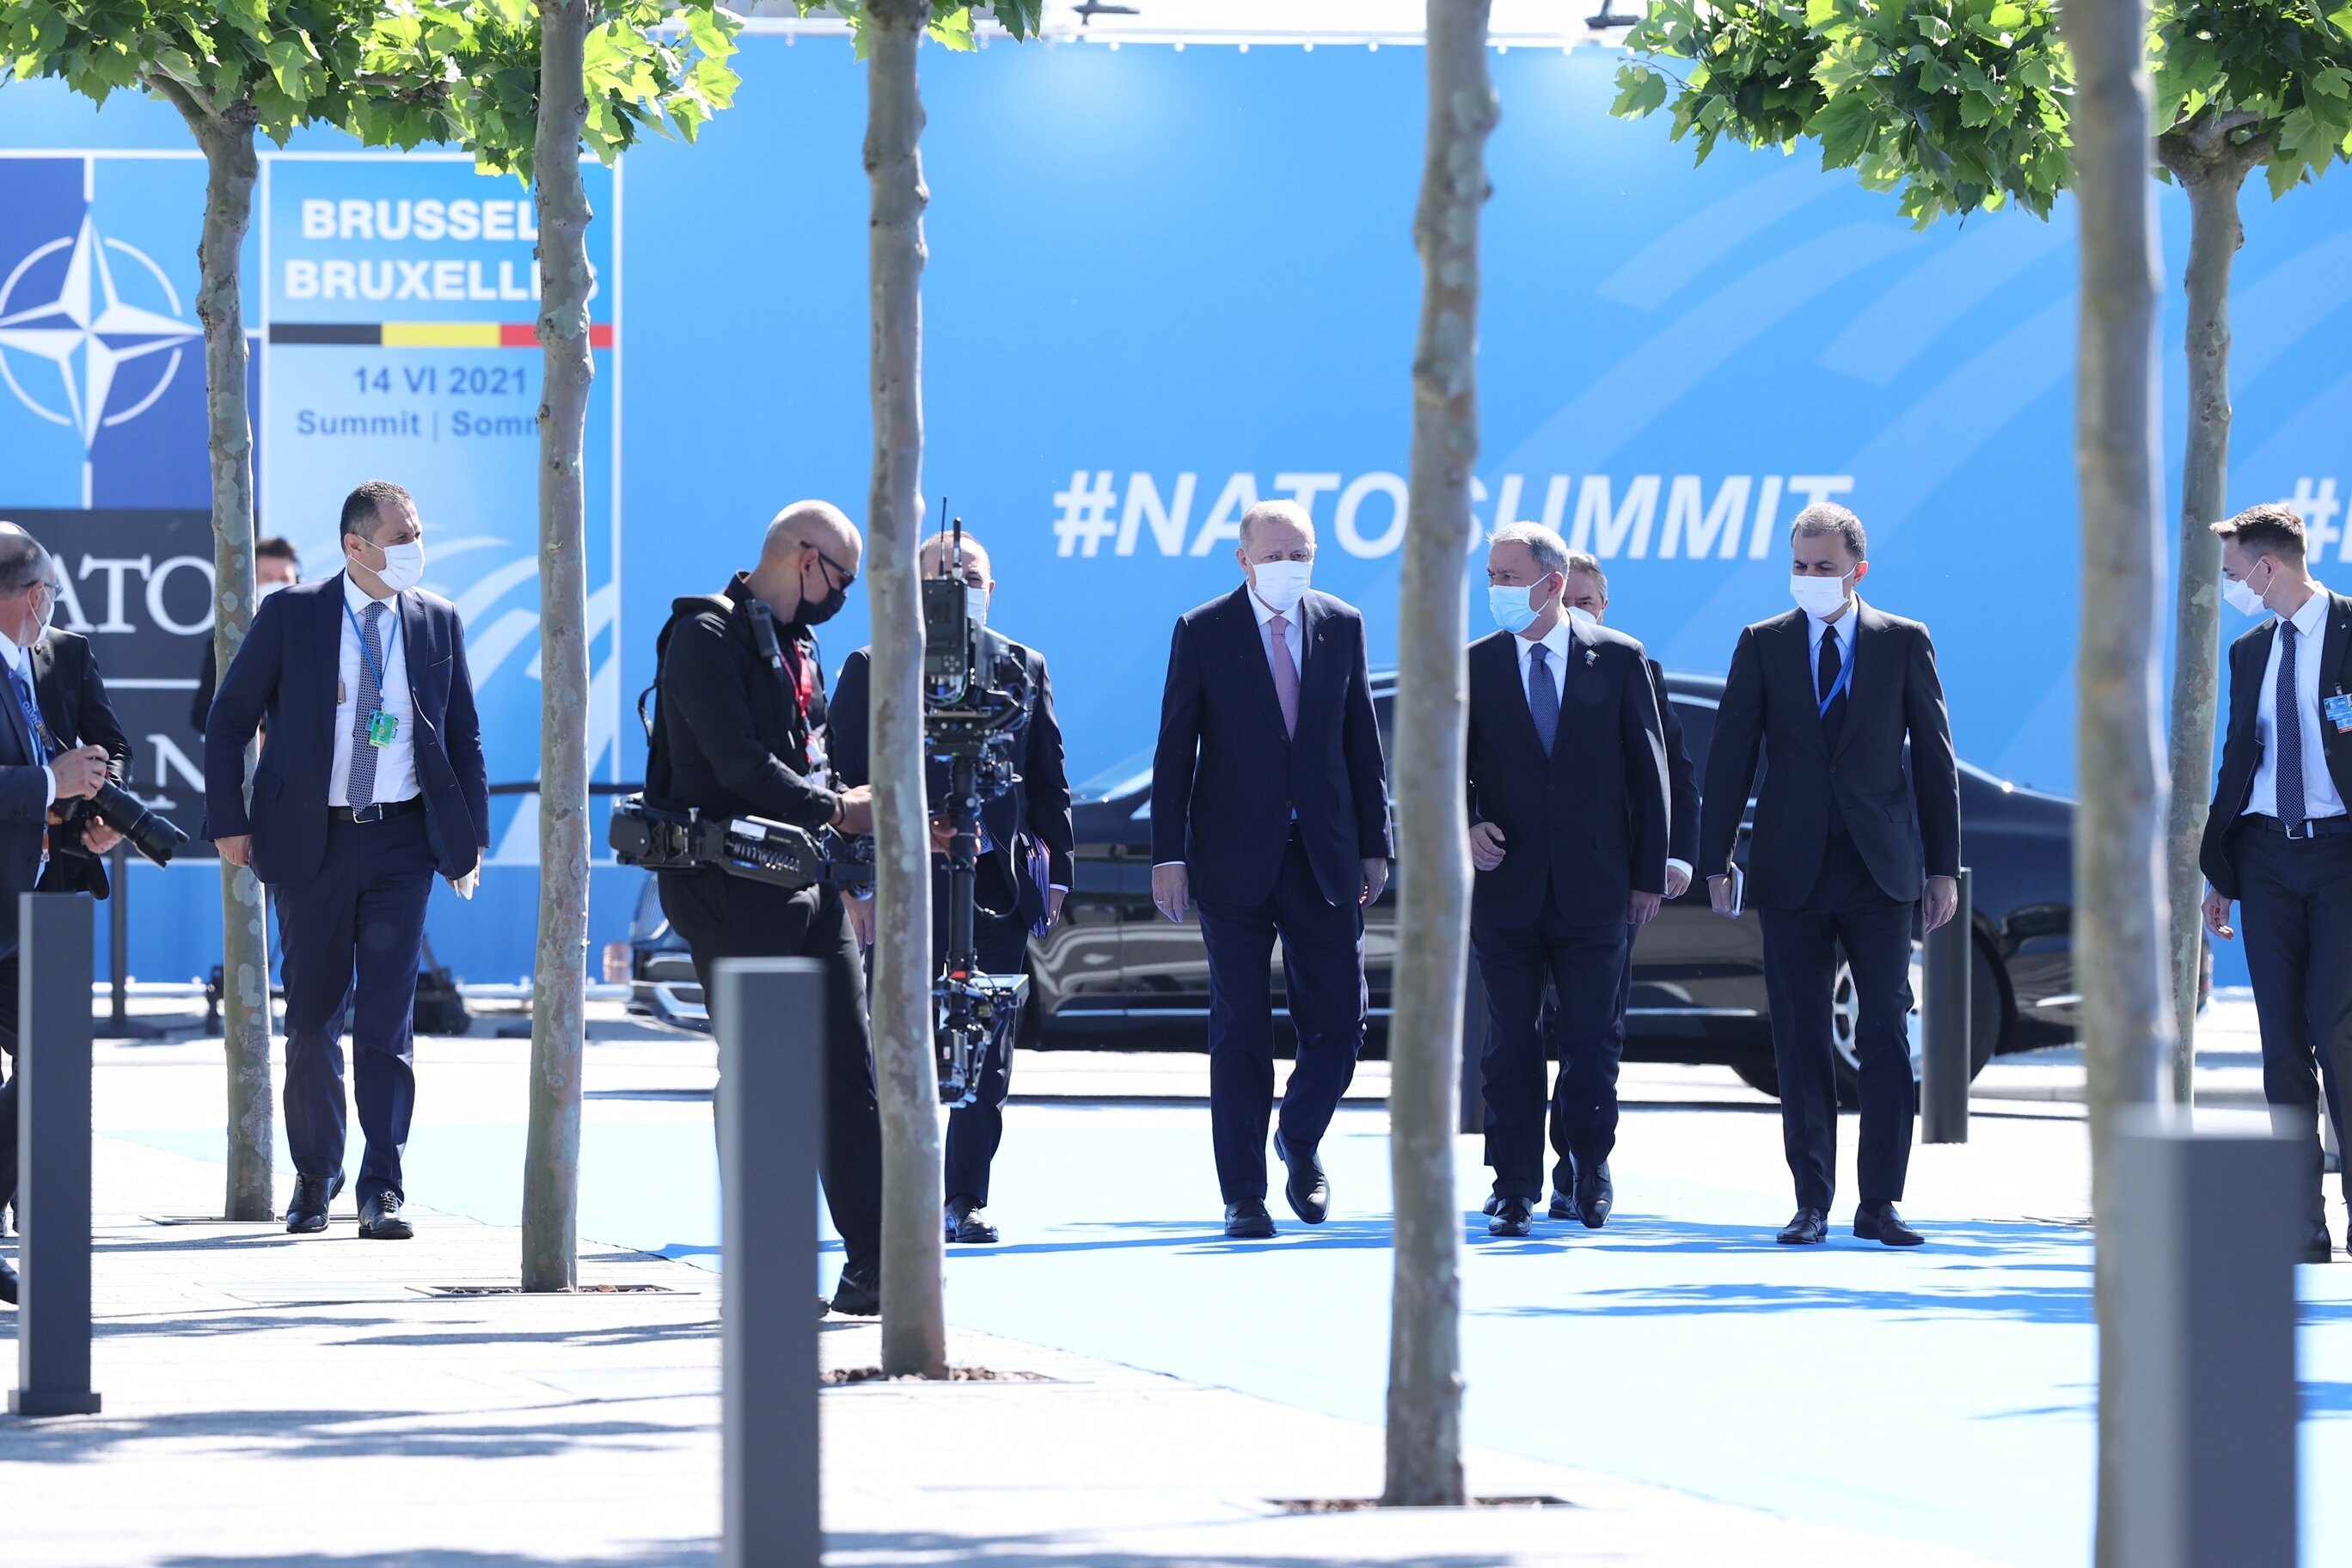 Erdoğan arrives at NATO HQ in Brussels to attend leaders' summit